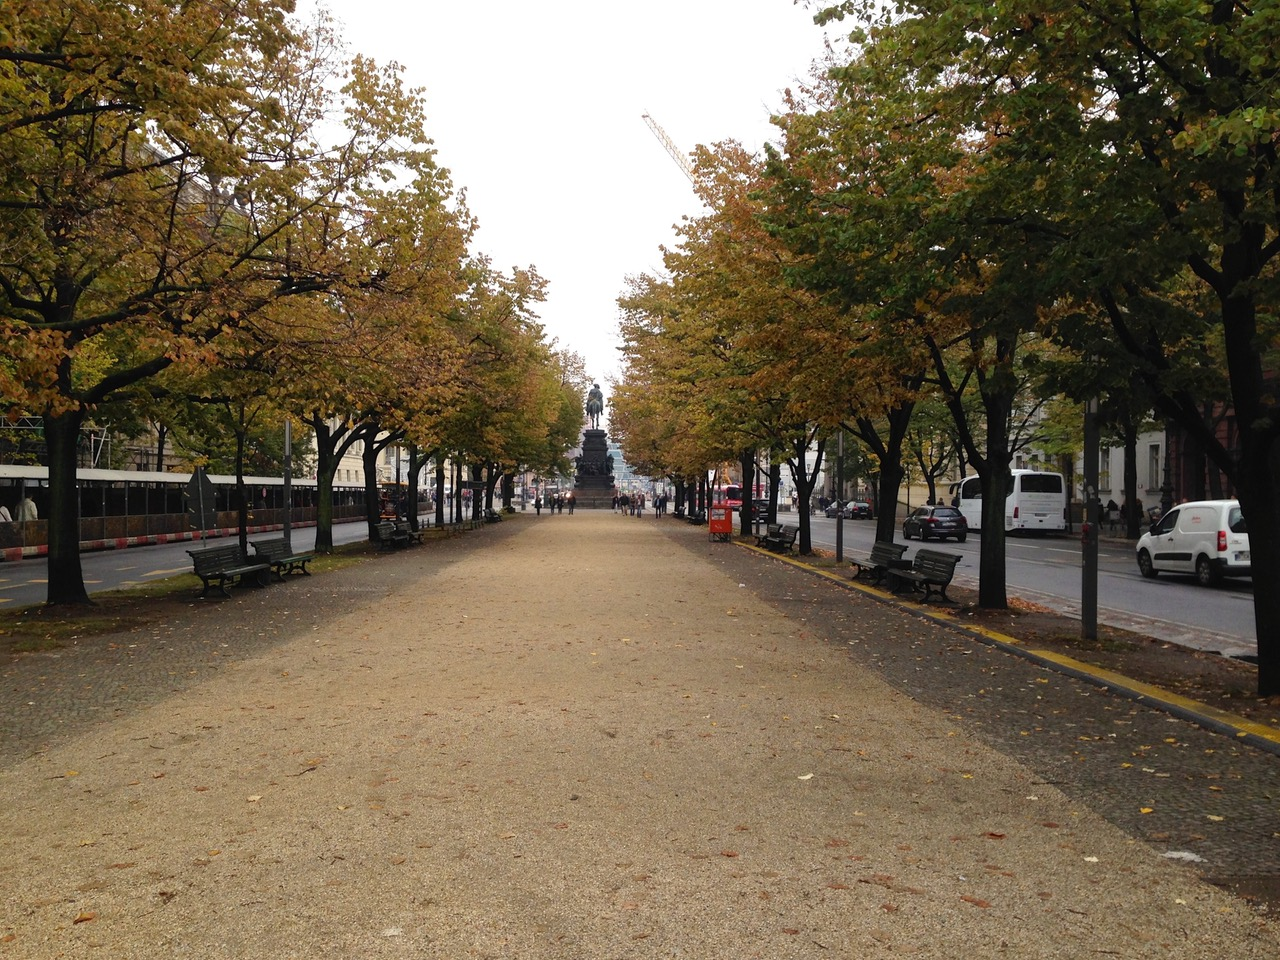 Taking a walk Unter den Linden in Berlin, Germany